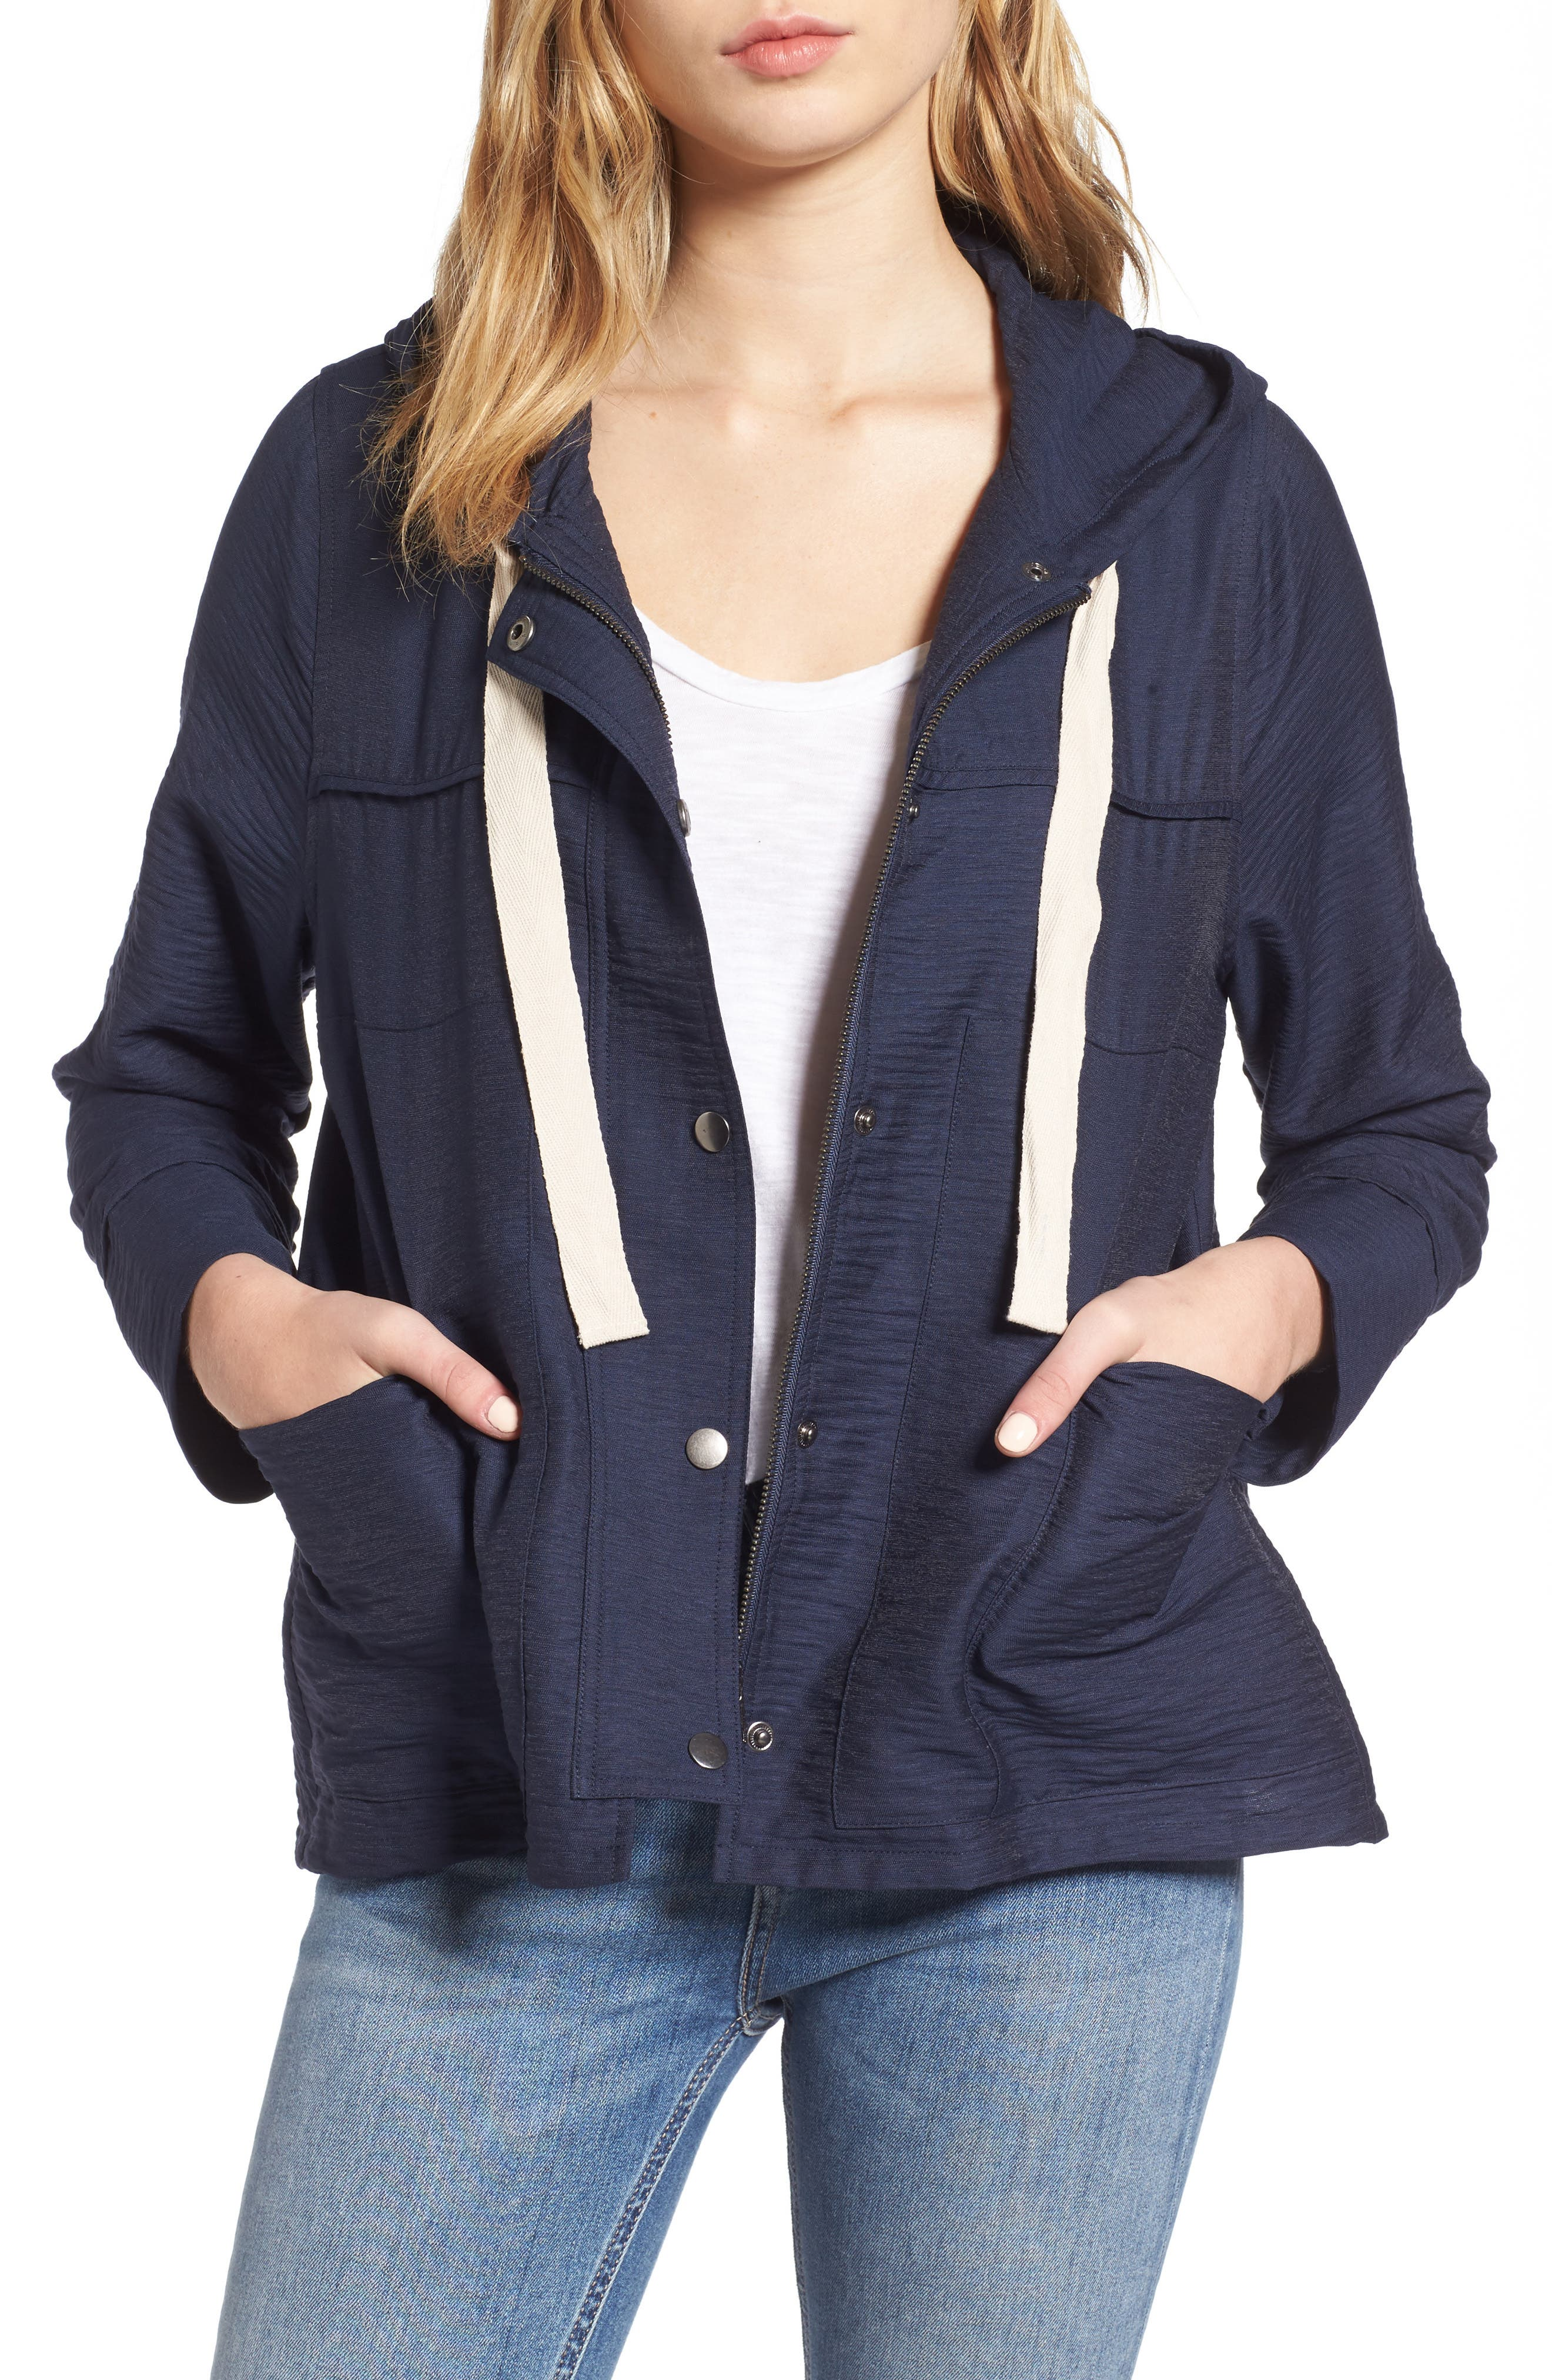 GUEST EDITOR Hooded Swing Jacket